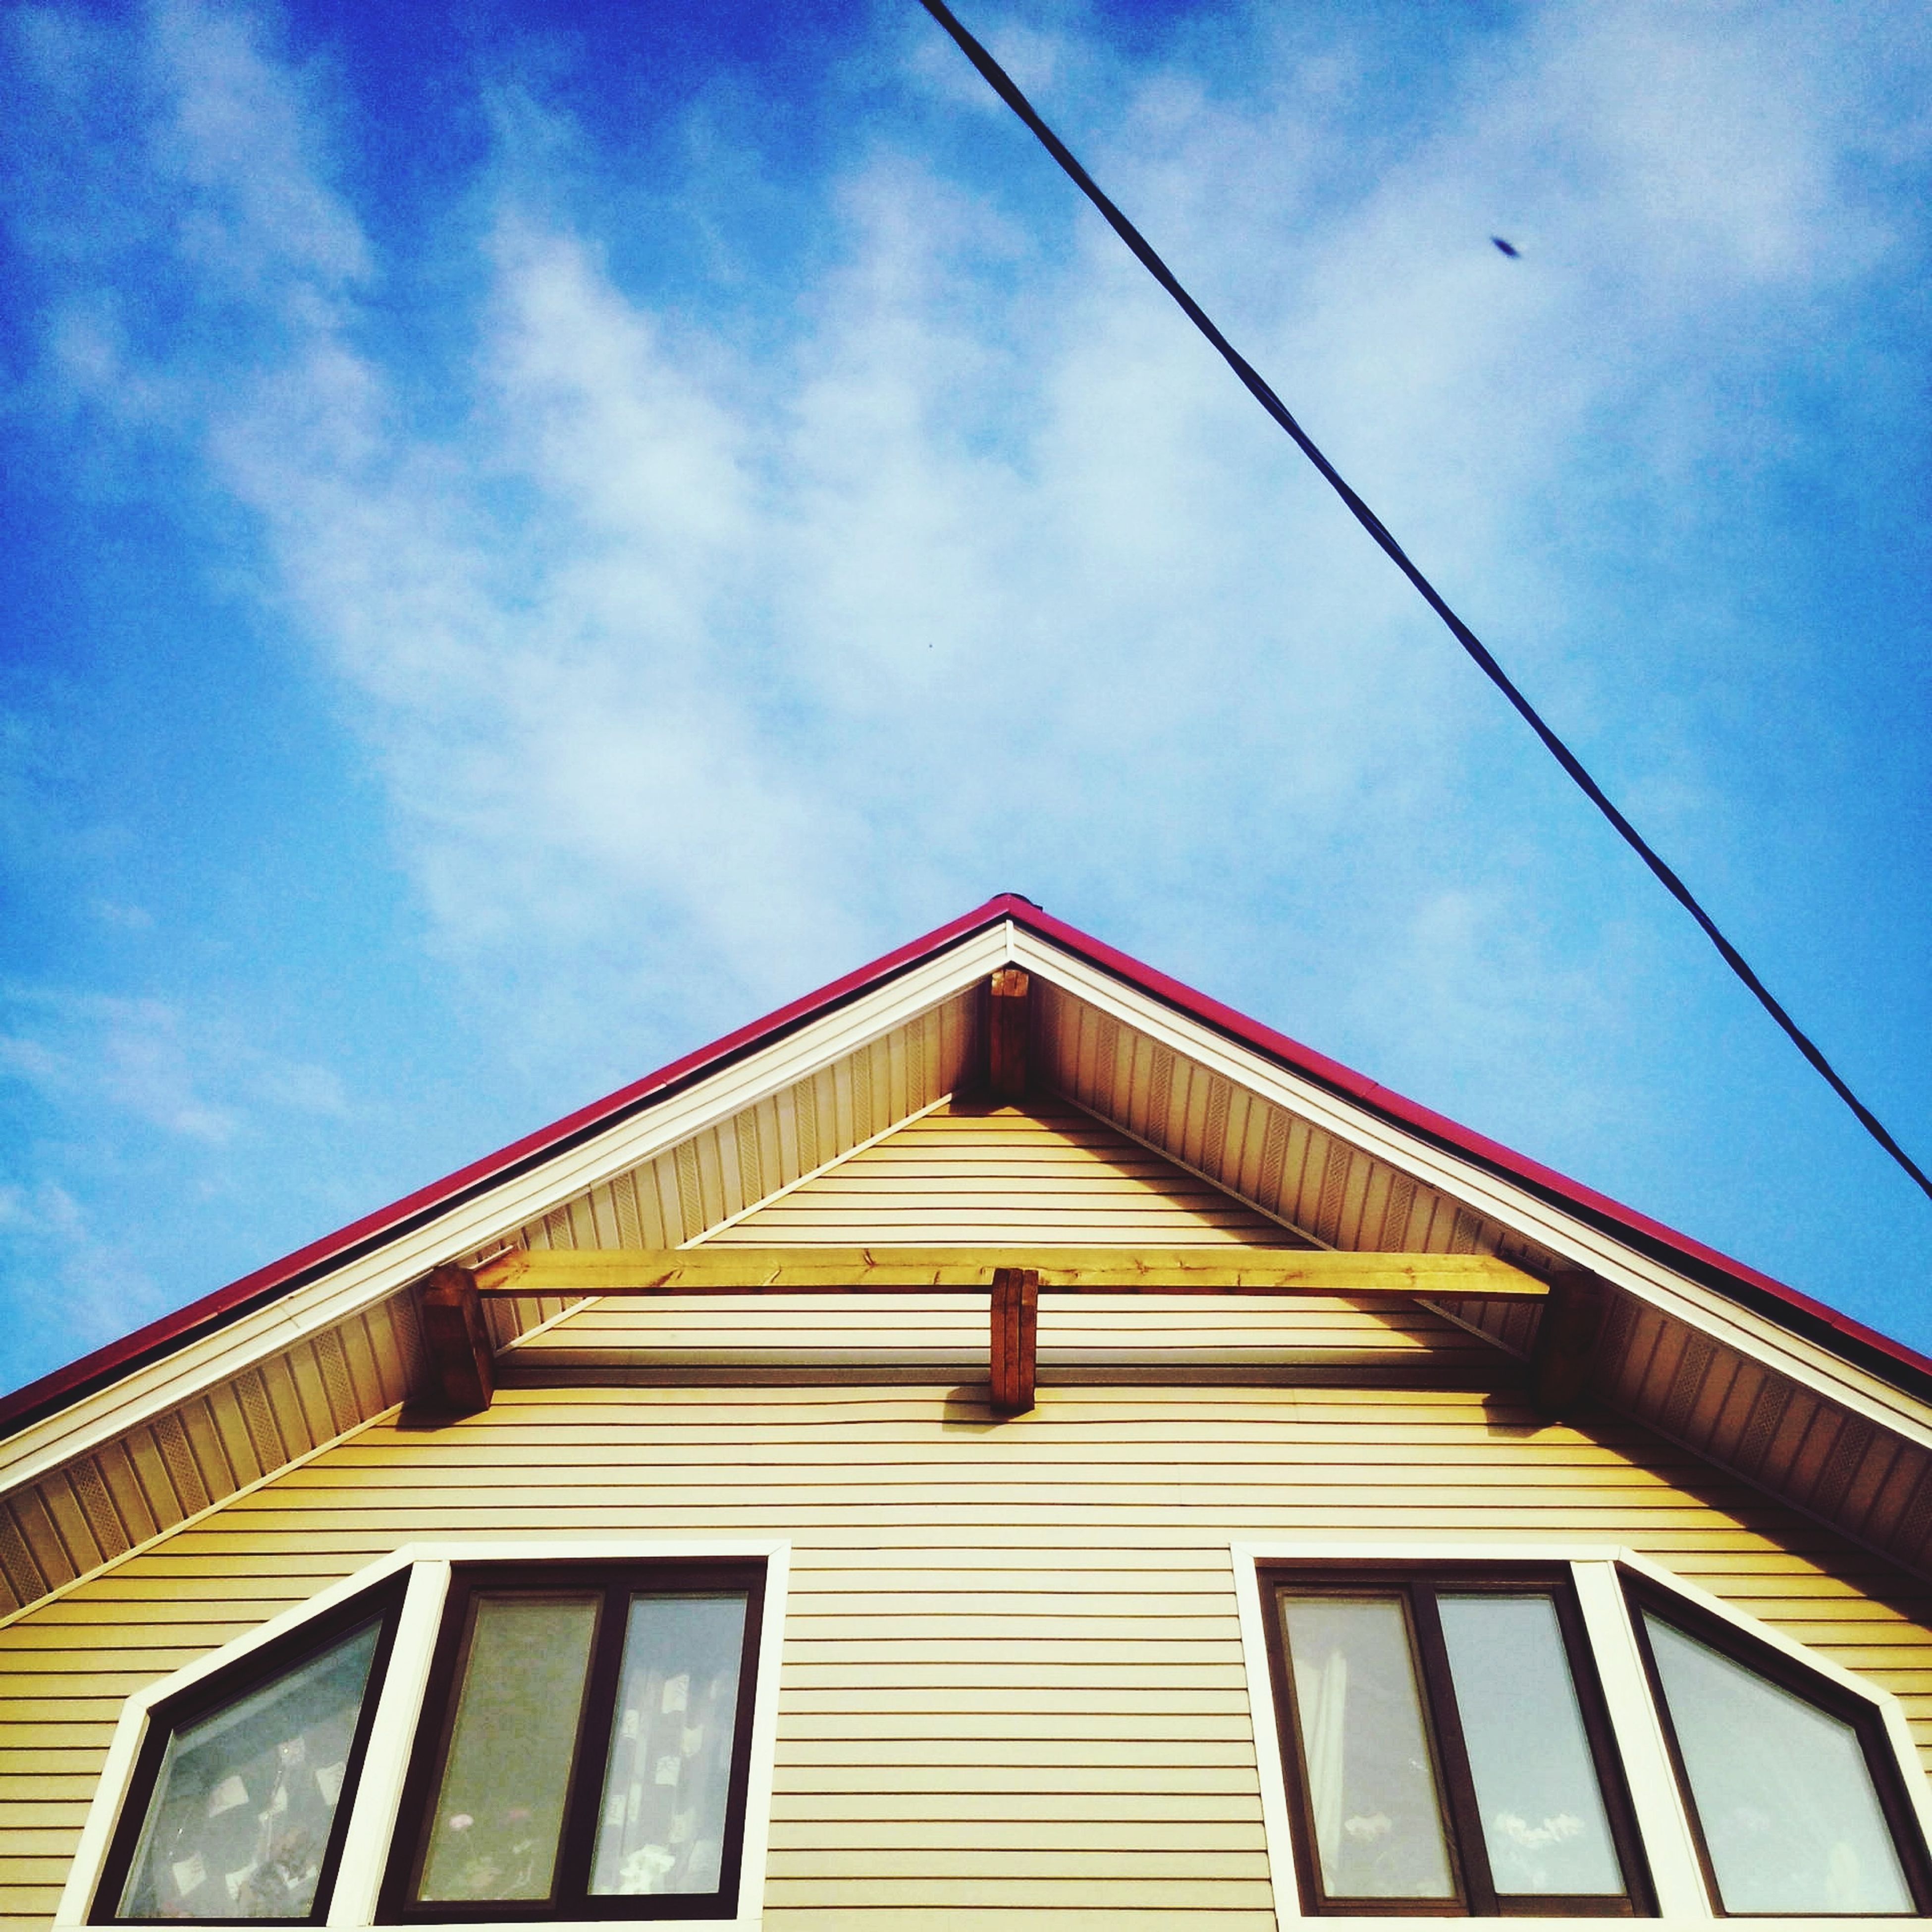 architecture, low angle view, built structure, building exterior, sky, blue, building, residential structure, cloud, residential building, window, cloud - sky, high section, day, outdoors, cable, no people, house, roof, power line